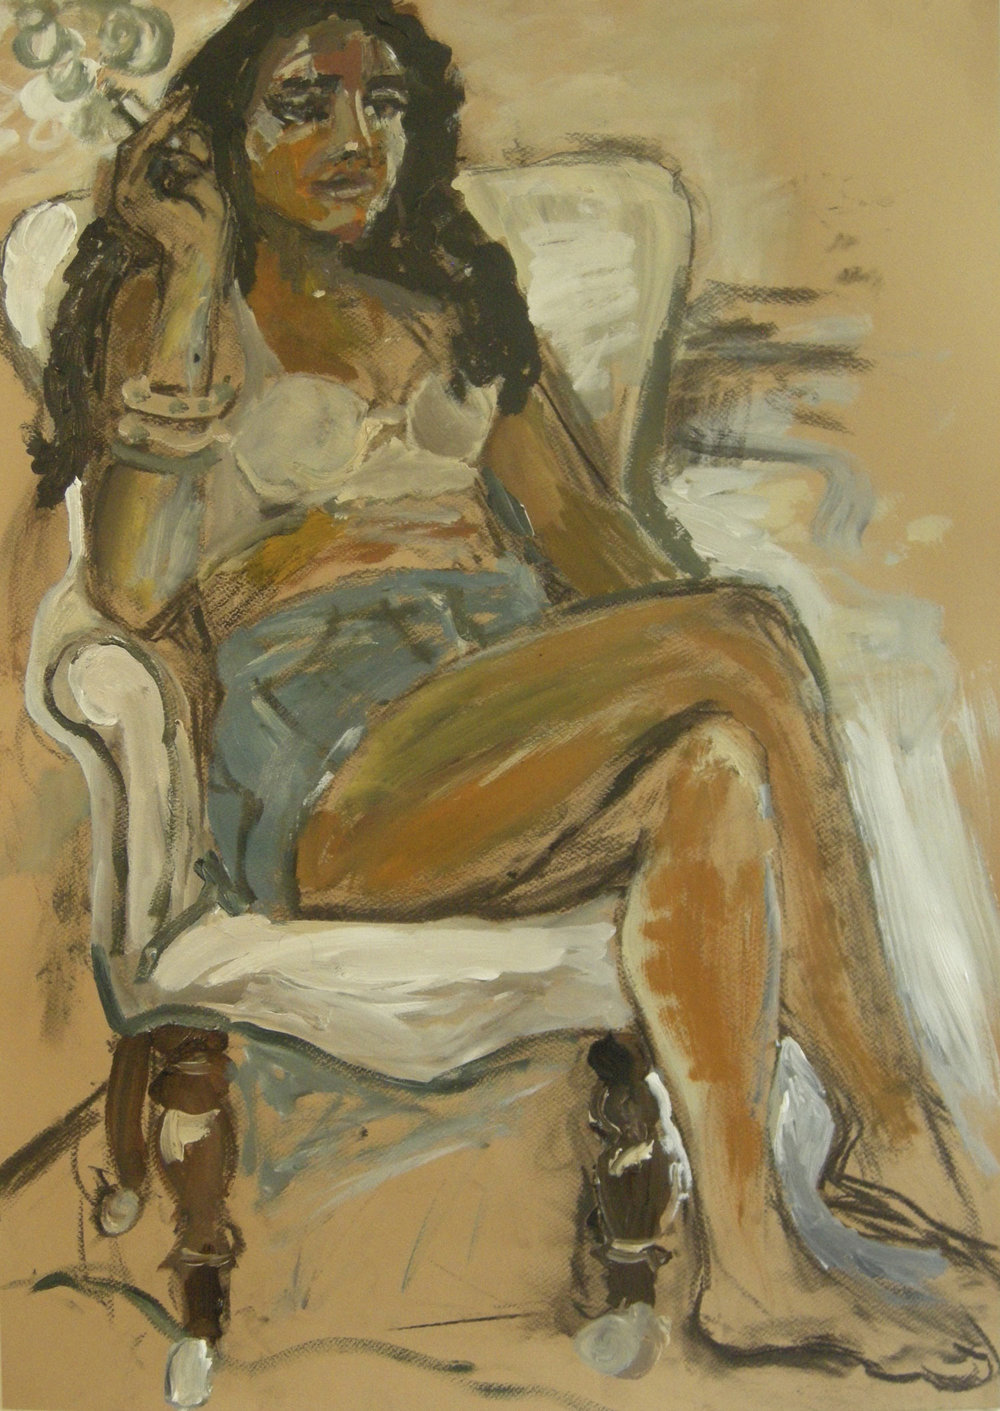 CONTEMPLATING (MAYAENI)  Mixed Media on Paper | 50 x 70 cm | 2013